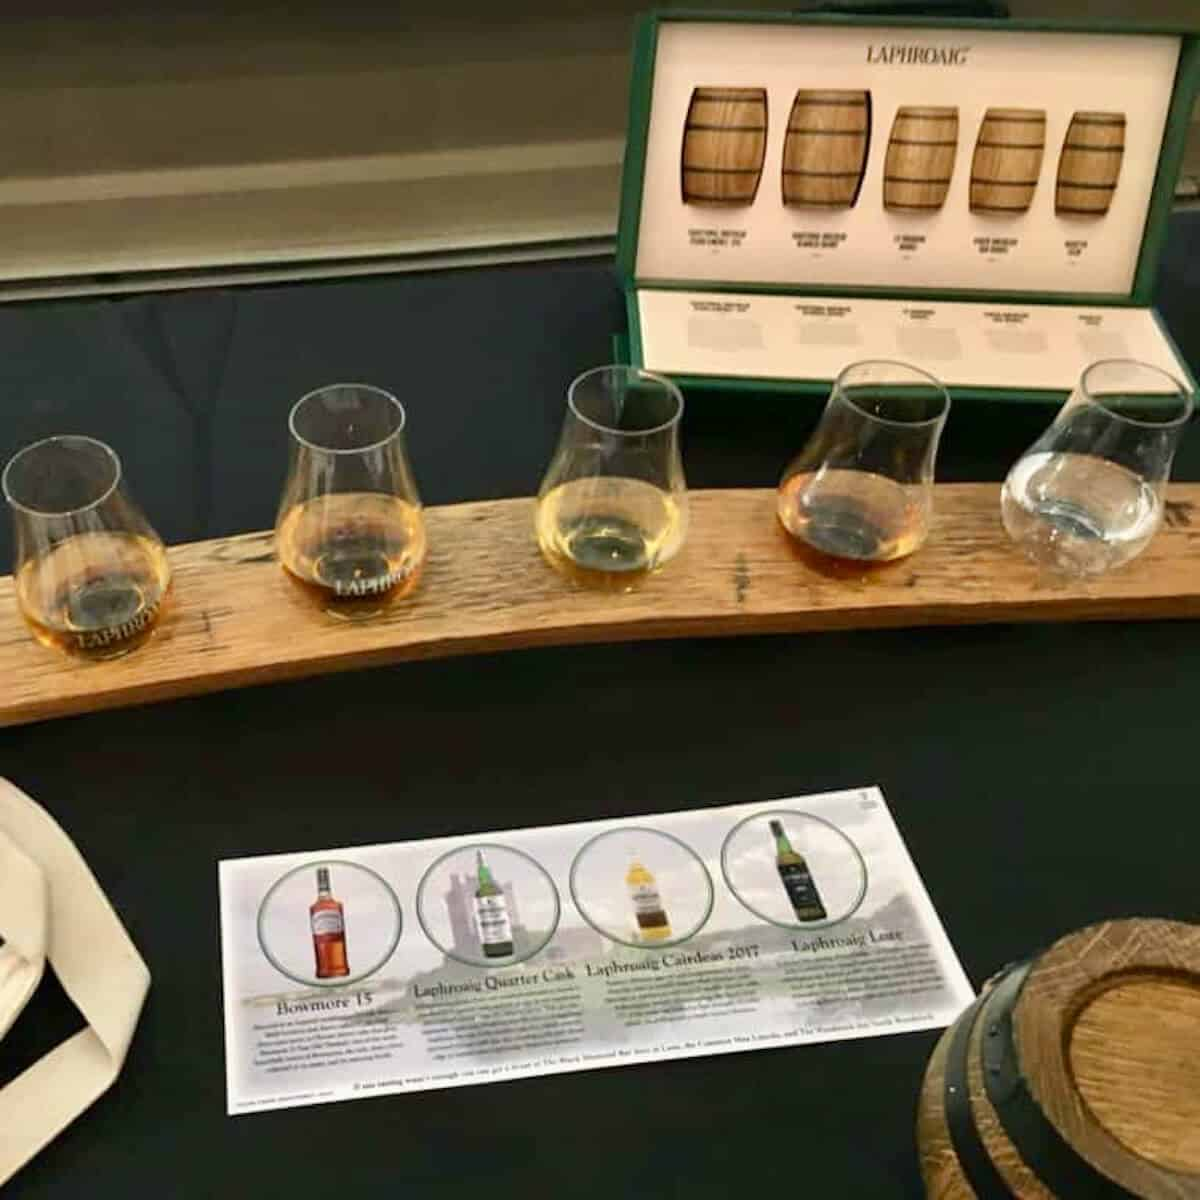 Laphroaig and Bowmore scotch tasting lineup poured in a flight on a table.